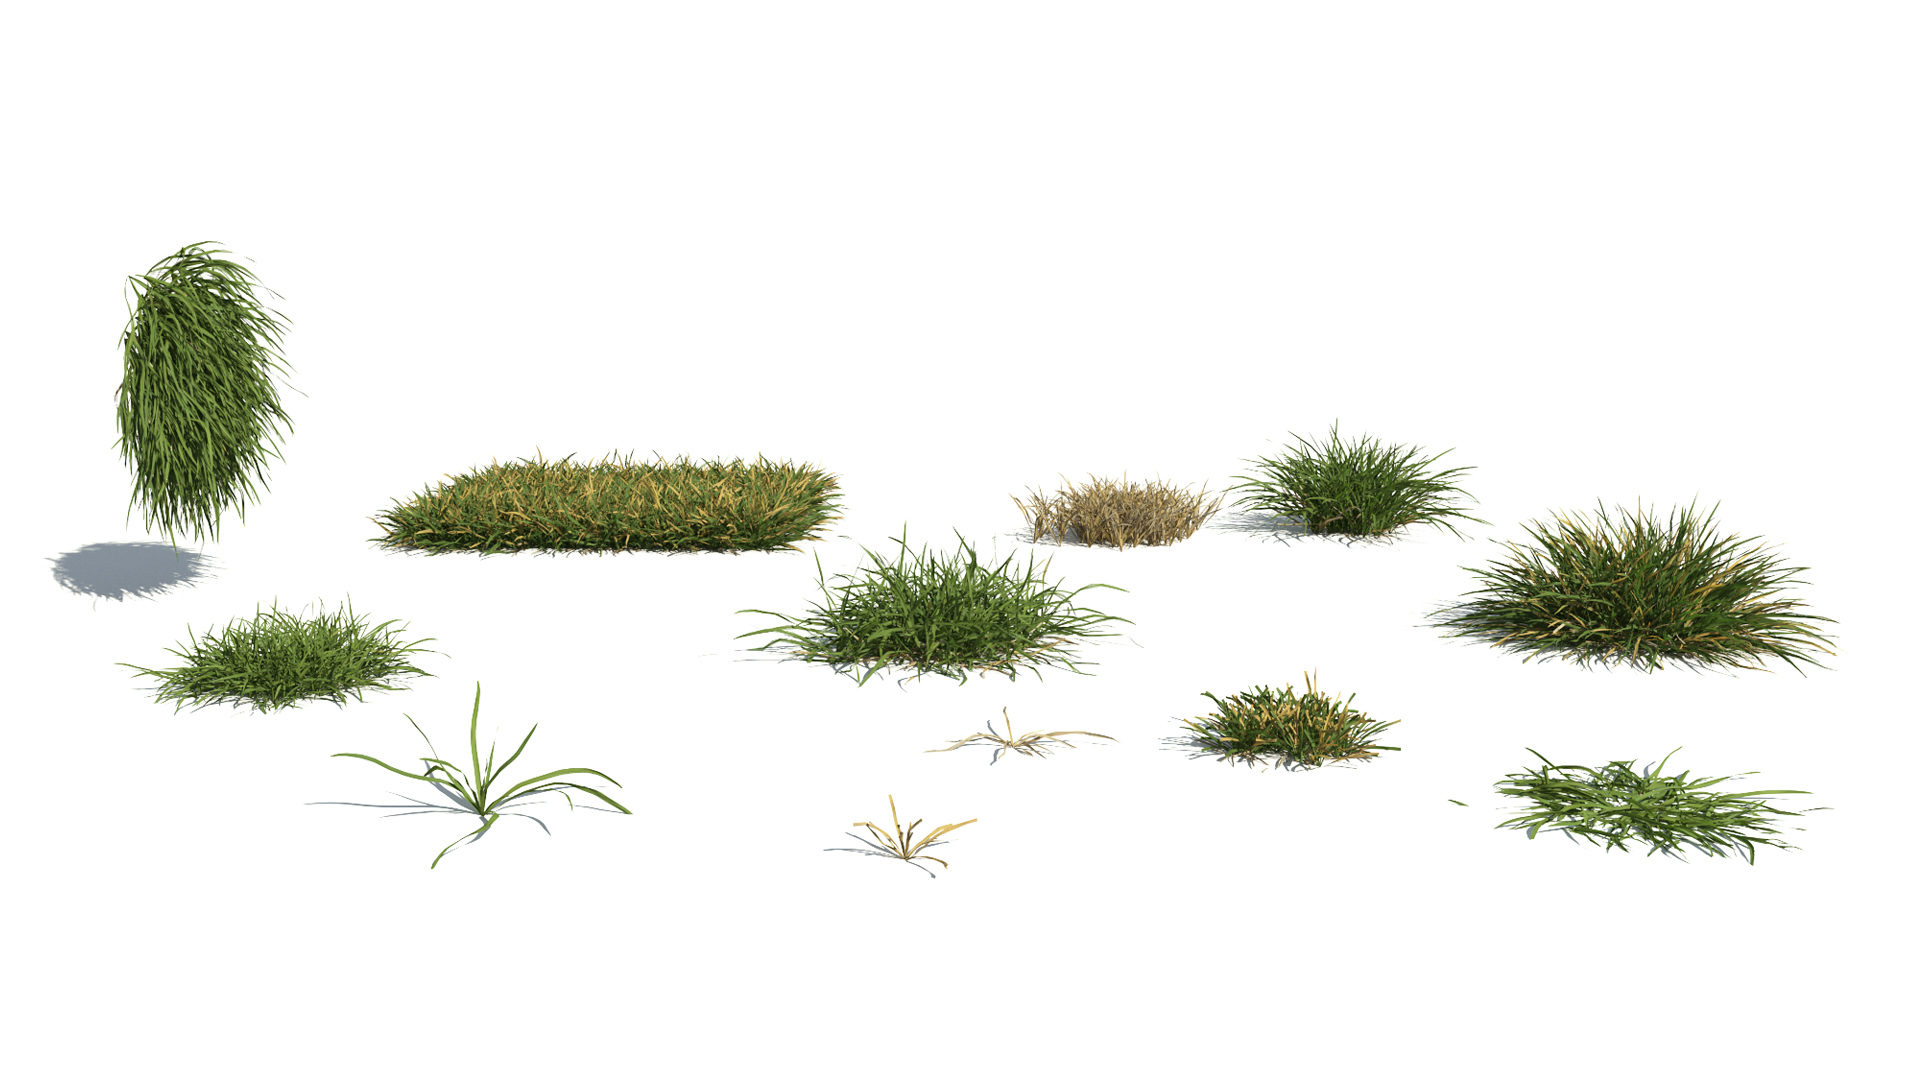 3D model of the Generic grass and lawn engine Generic grass lawn different presets